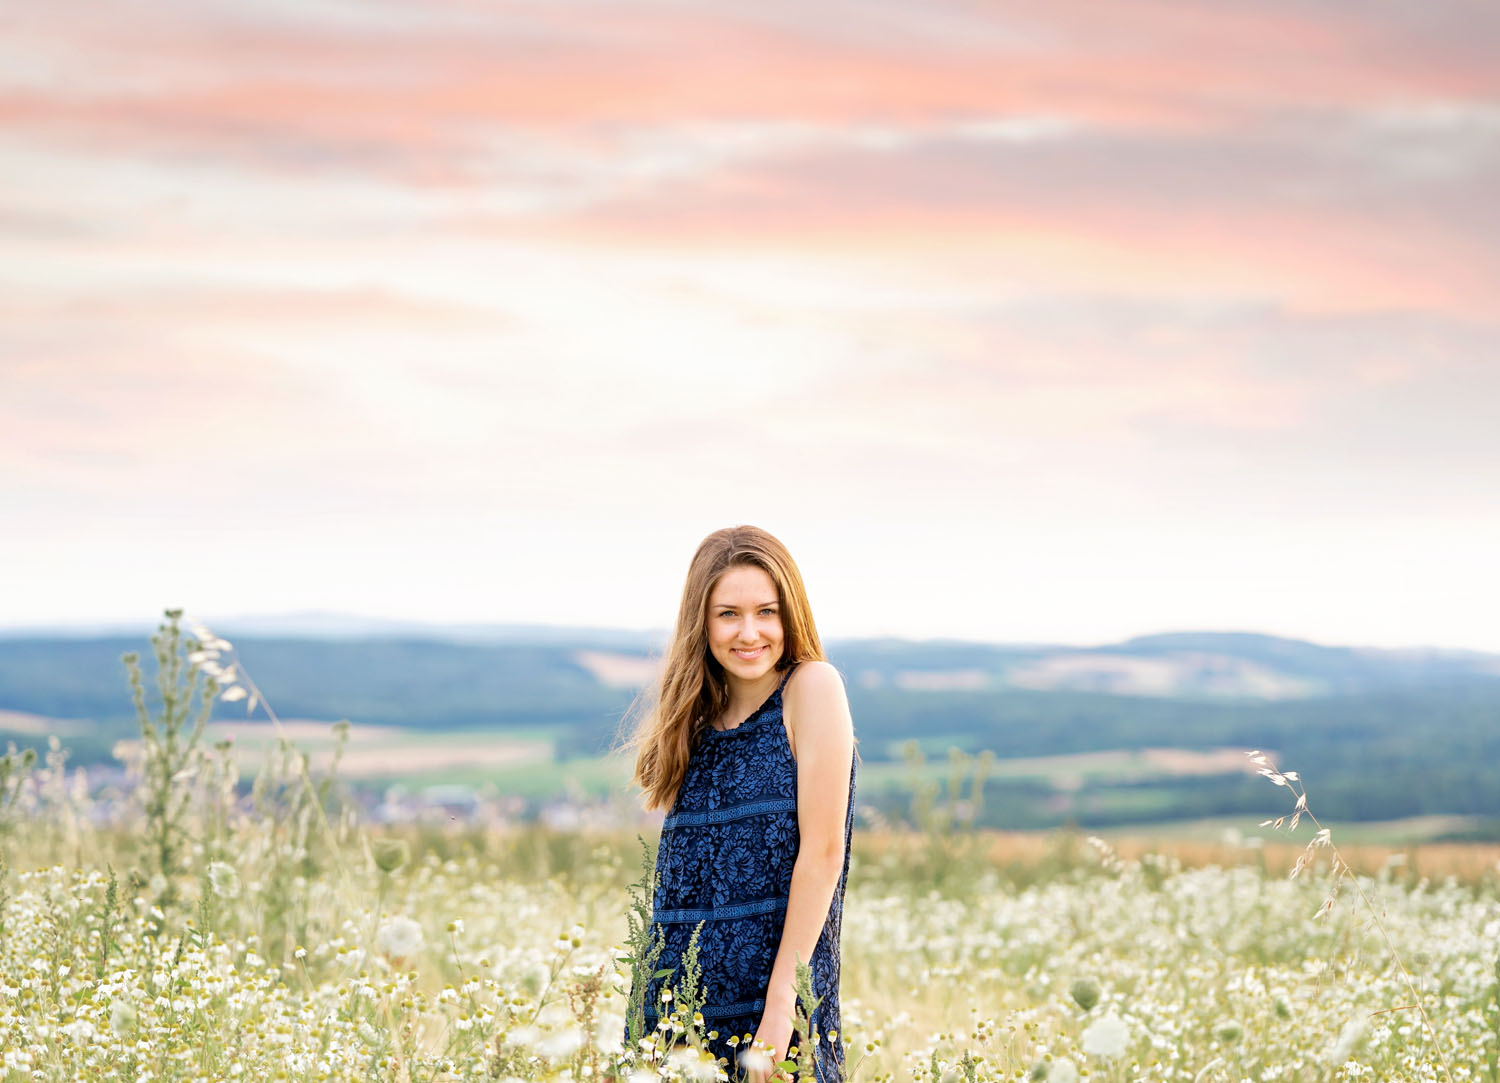 Ramstein High School Senior girl summer Session in Eulenbis with young woman celebrating her milestone with an outdoor photo session by photographer Sarah Havens from the KMC area, Germany  Schulabschluss Fotoshooting mit junger Frau in Sommer in Feld von Fotografin Sarah Havens aus Reichenbach-Steegen bei Kaiserslautern, Rheinland-Pfalz